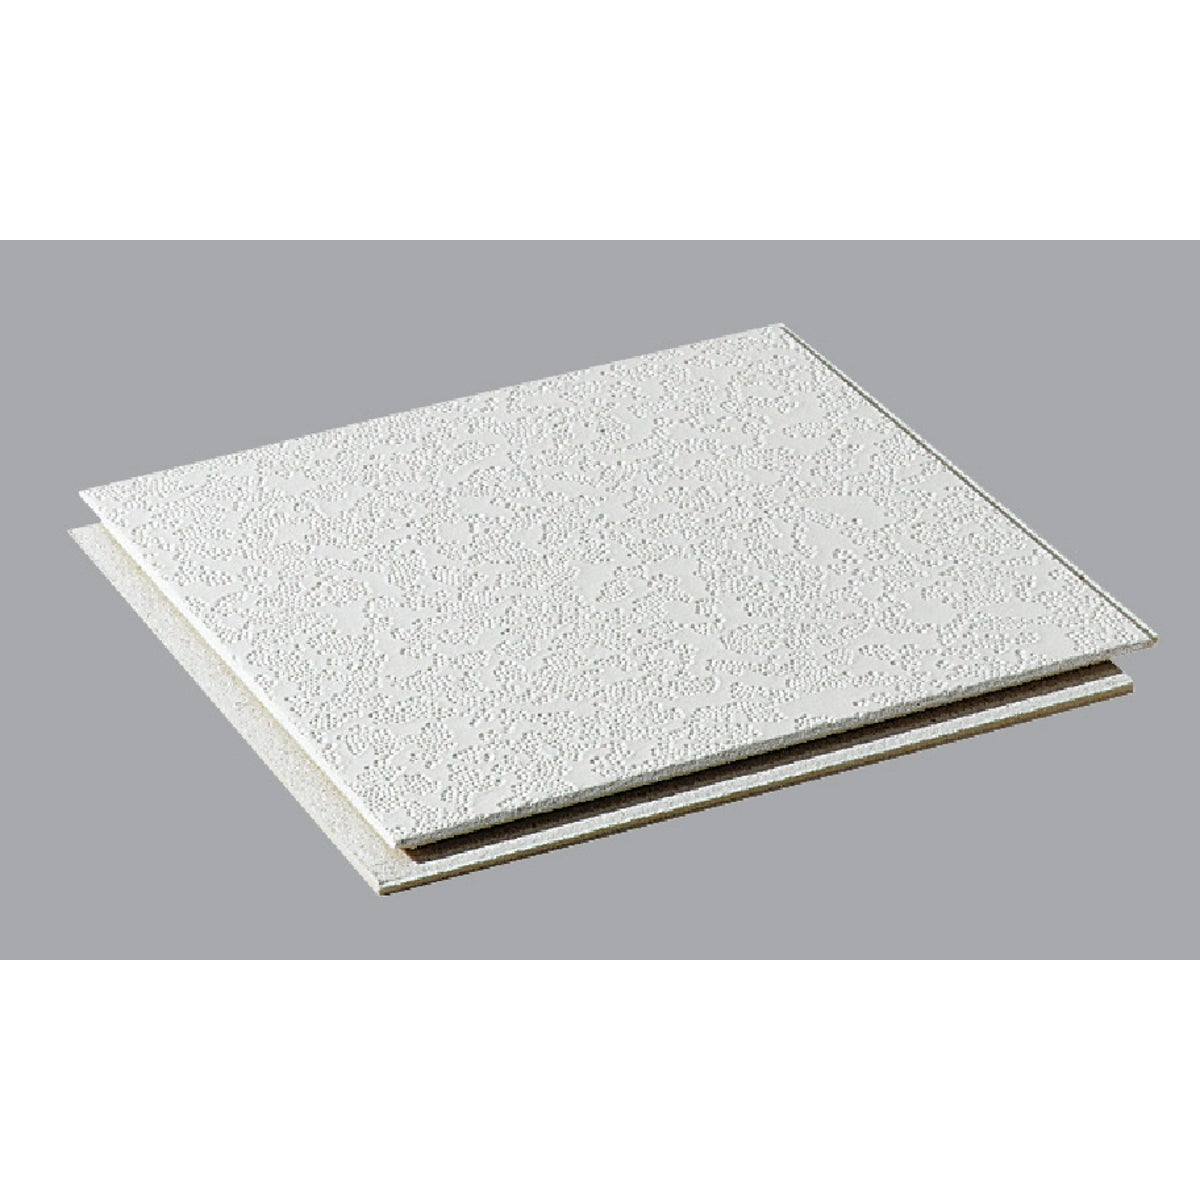 "12"" CAMBRAY CEILING TILE - BTCAM by Bldg Prod Canada Cor"